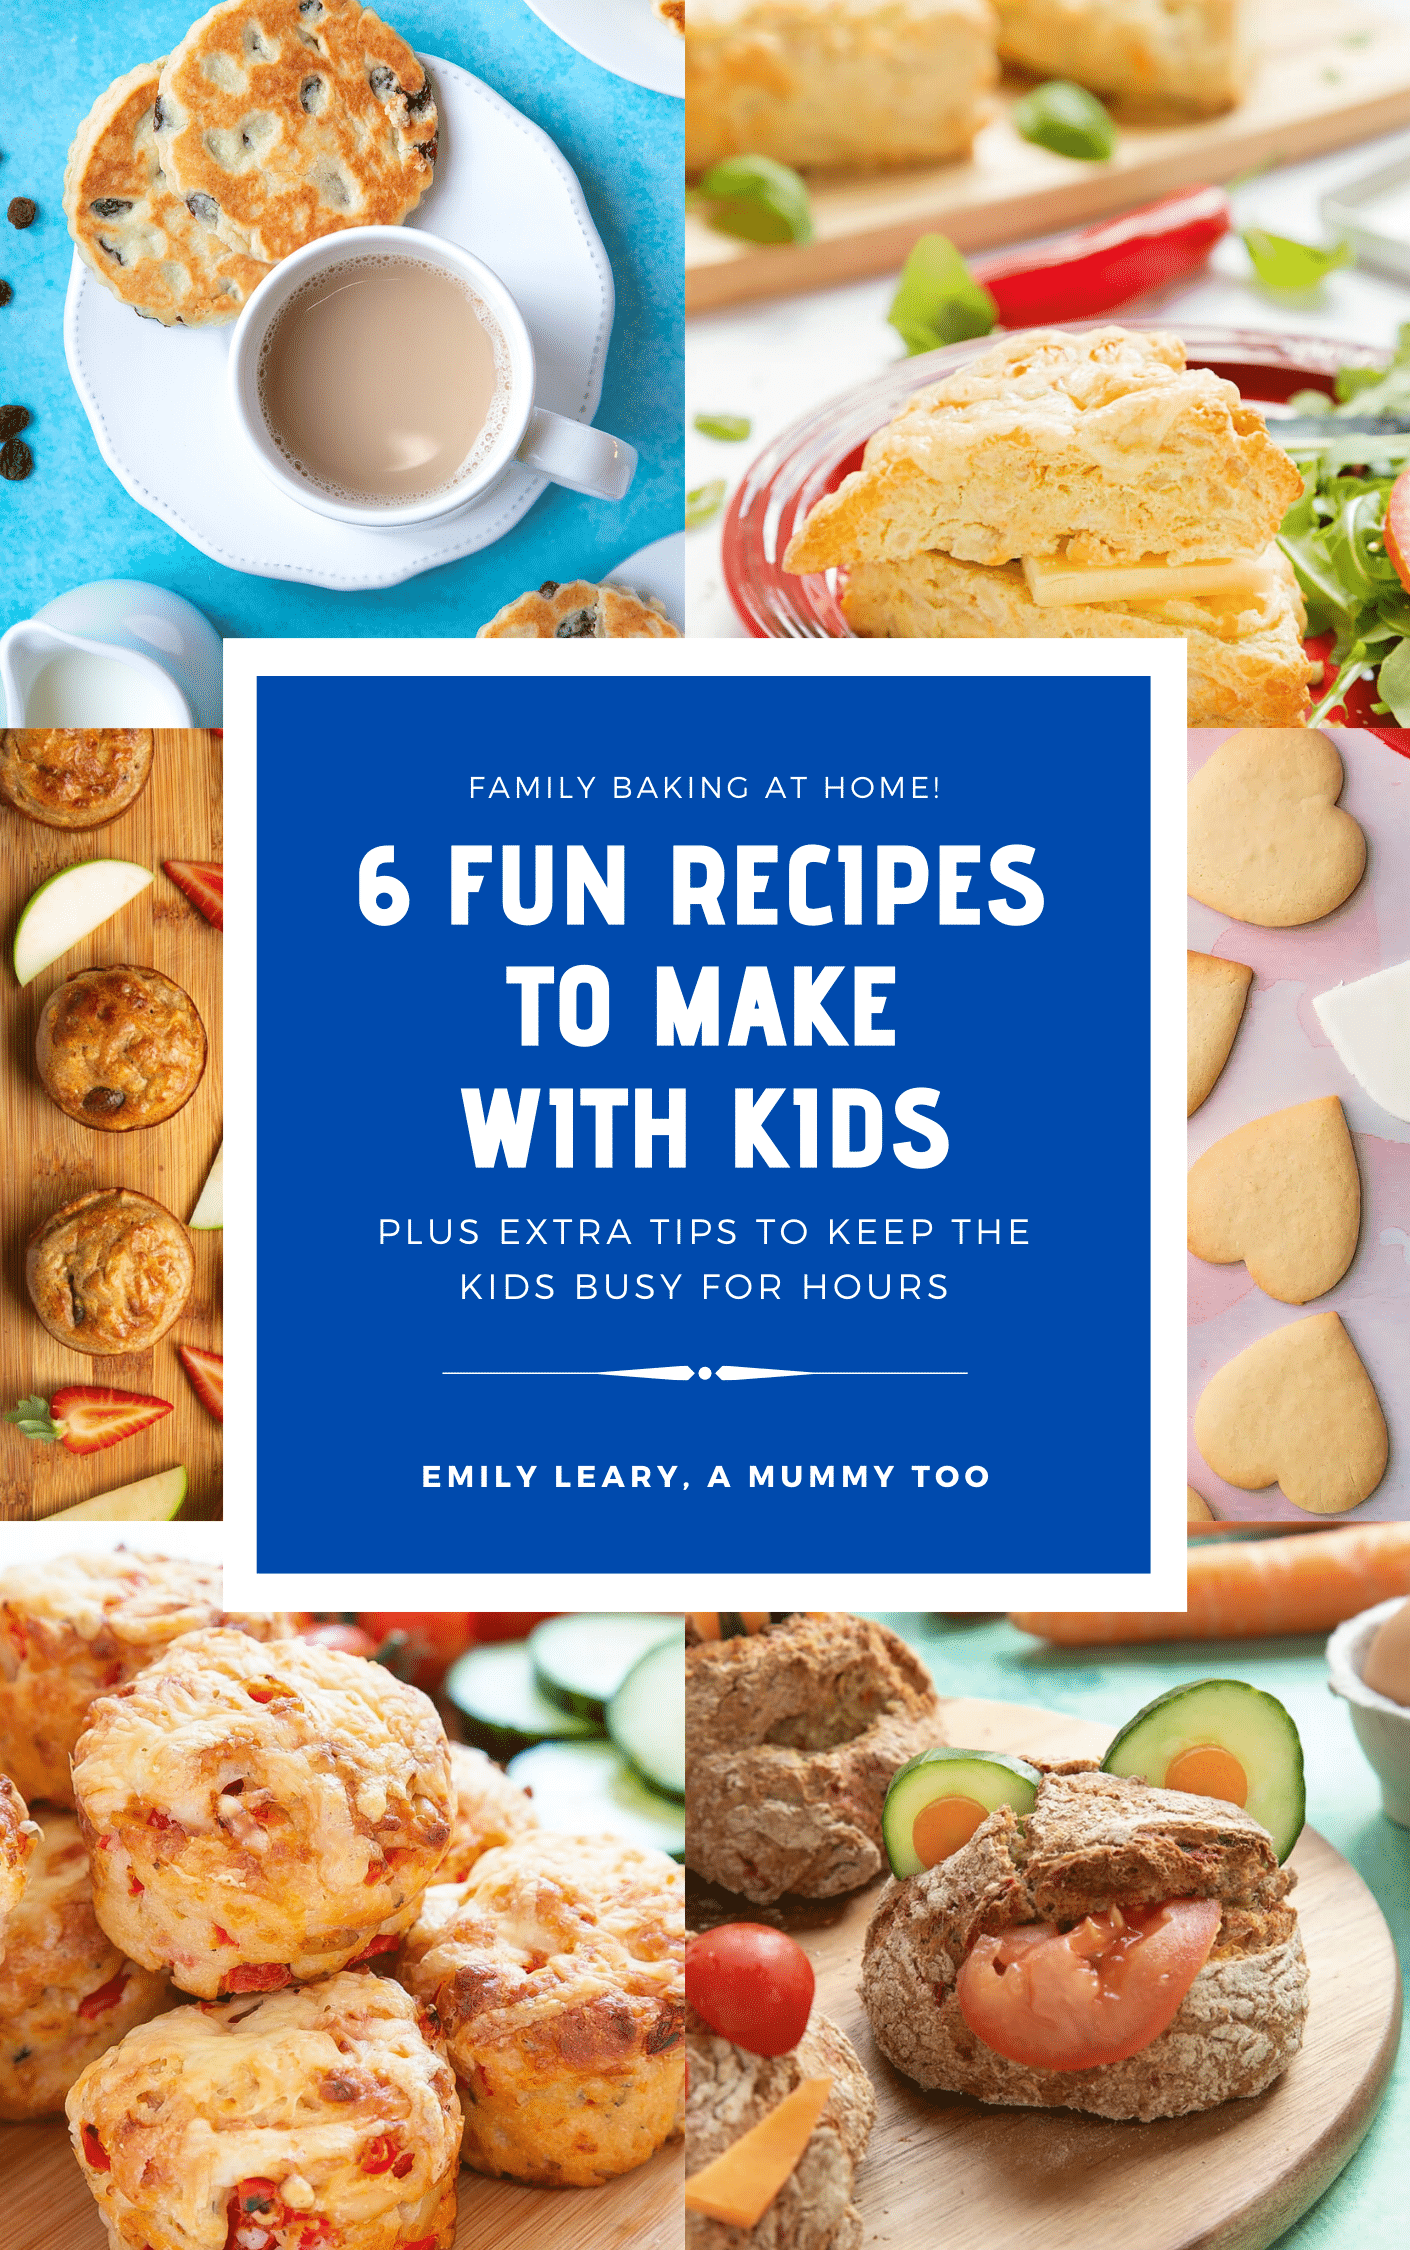 Vertical image showing a collage of the 6 recipes included in the book with white text overlay on a blue background: Family Baking at home! 6 fun recipes to make with kids - plus extra tips to keep the kids busy for hours.